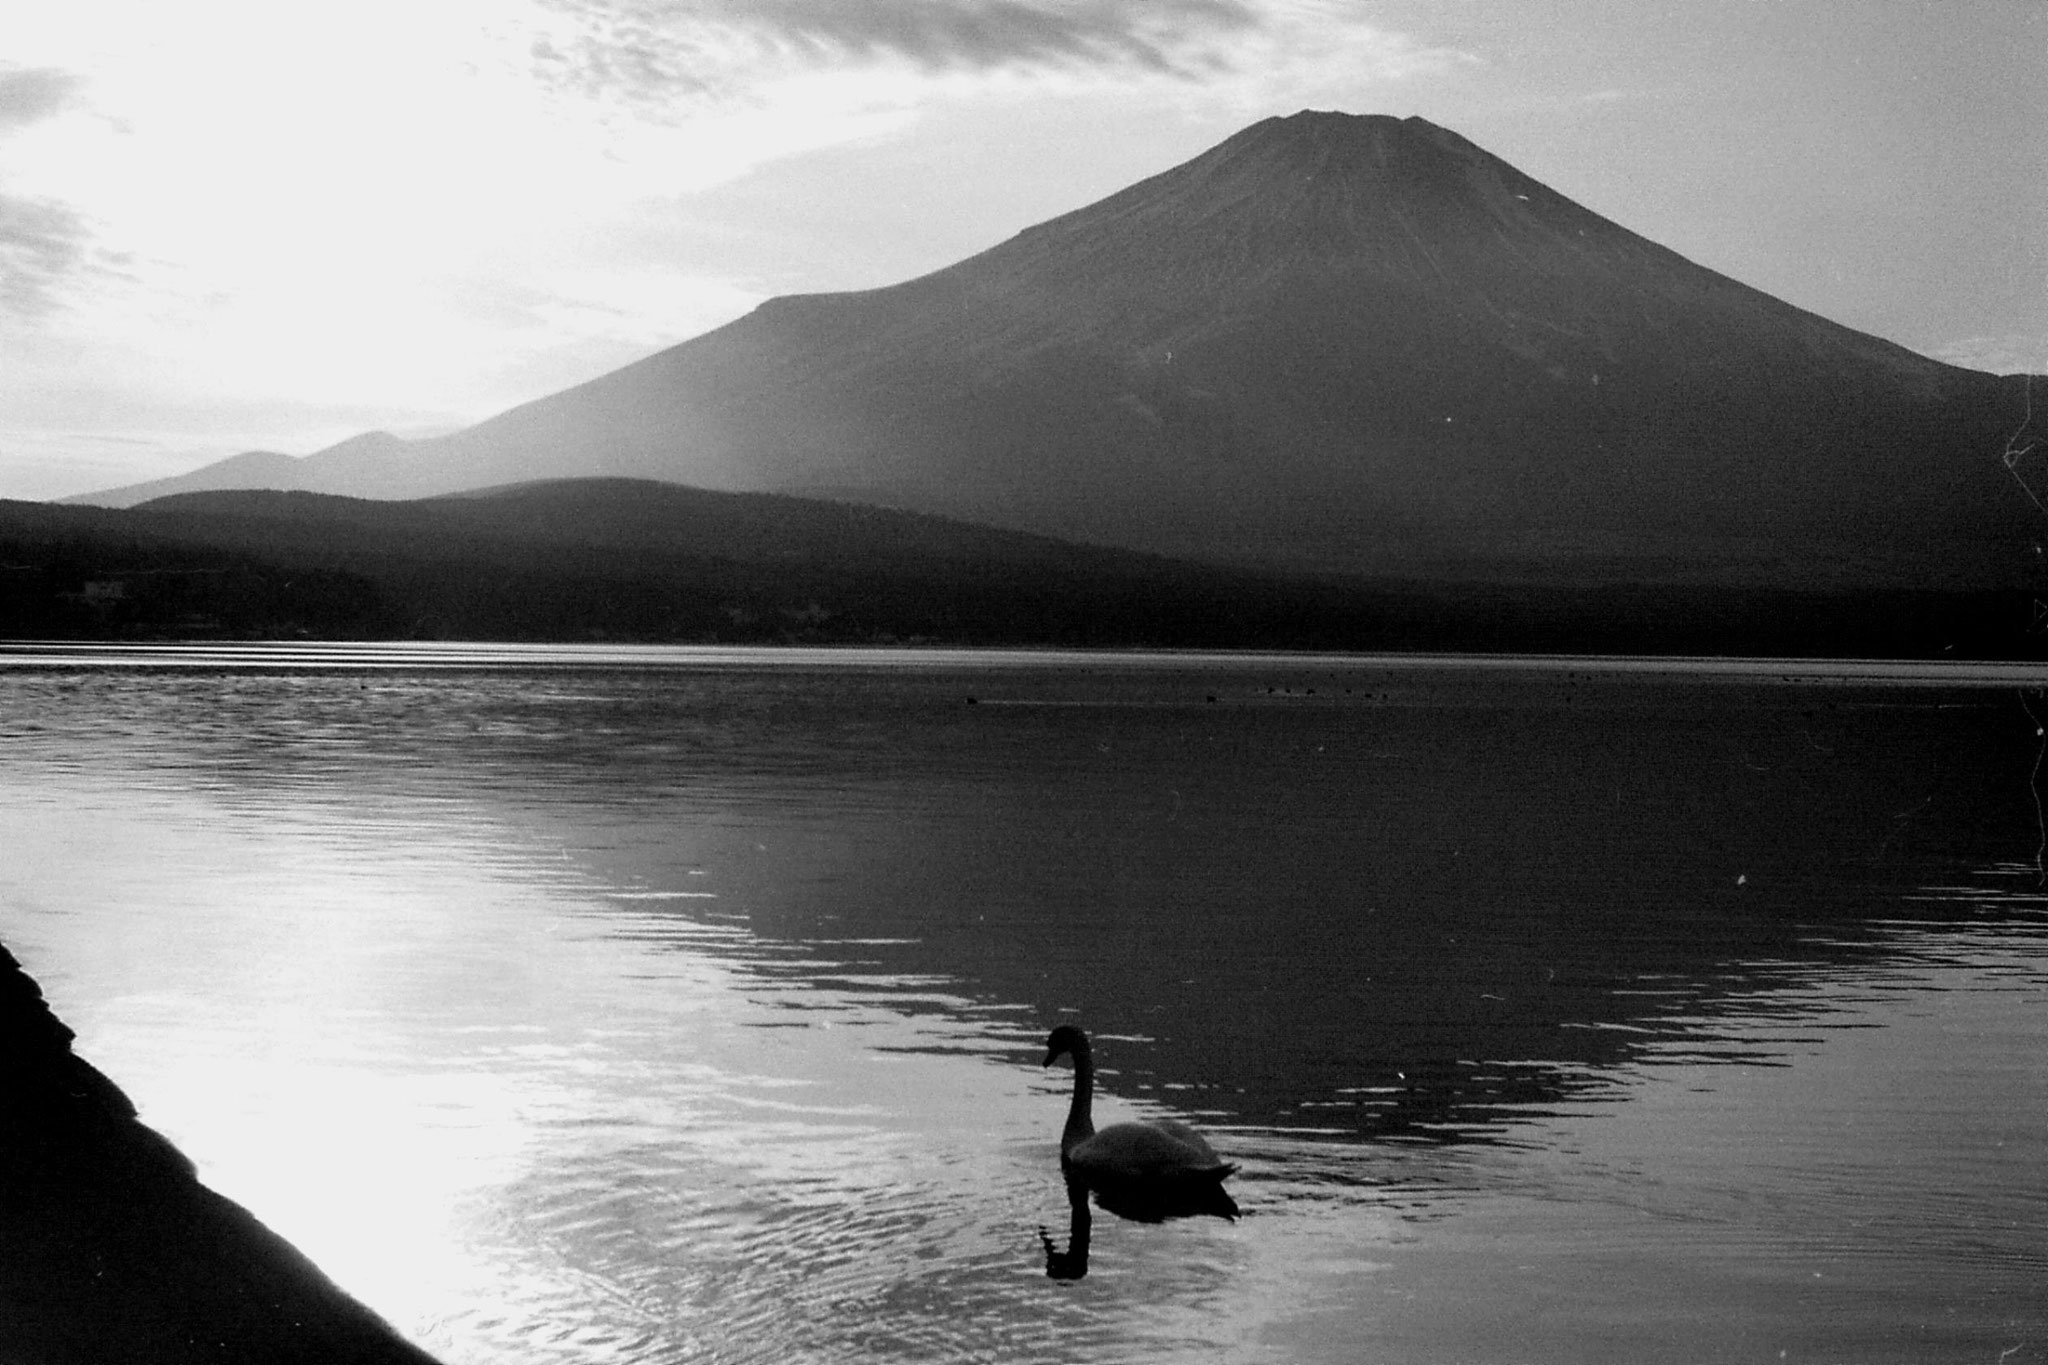 29/12/1988: 29: Mt Fuji and Five Lakes area